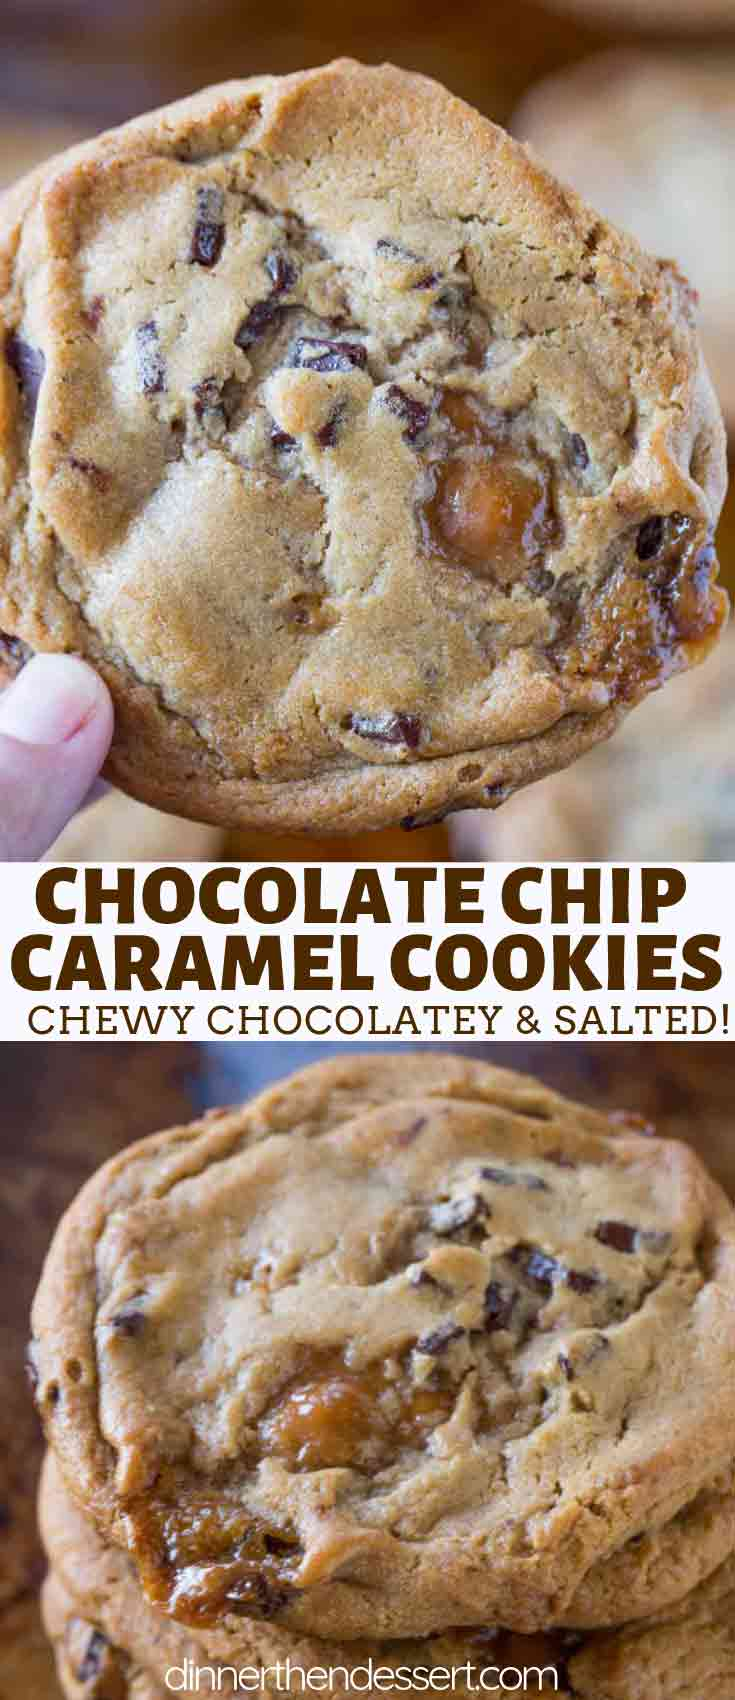 Cookies with Caramel Bits and Chocolate Chips